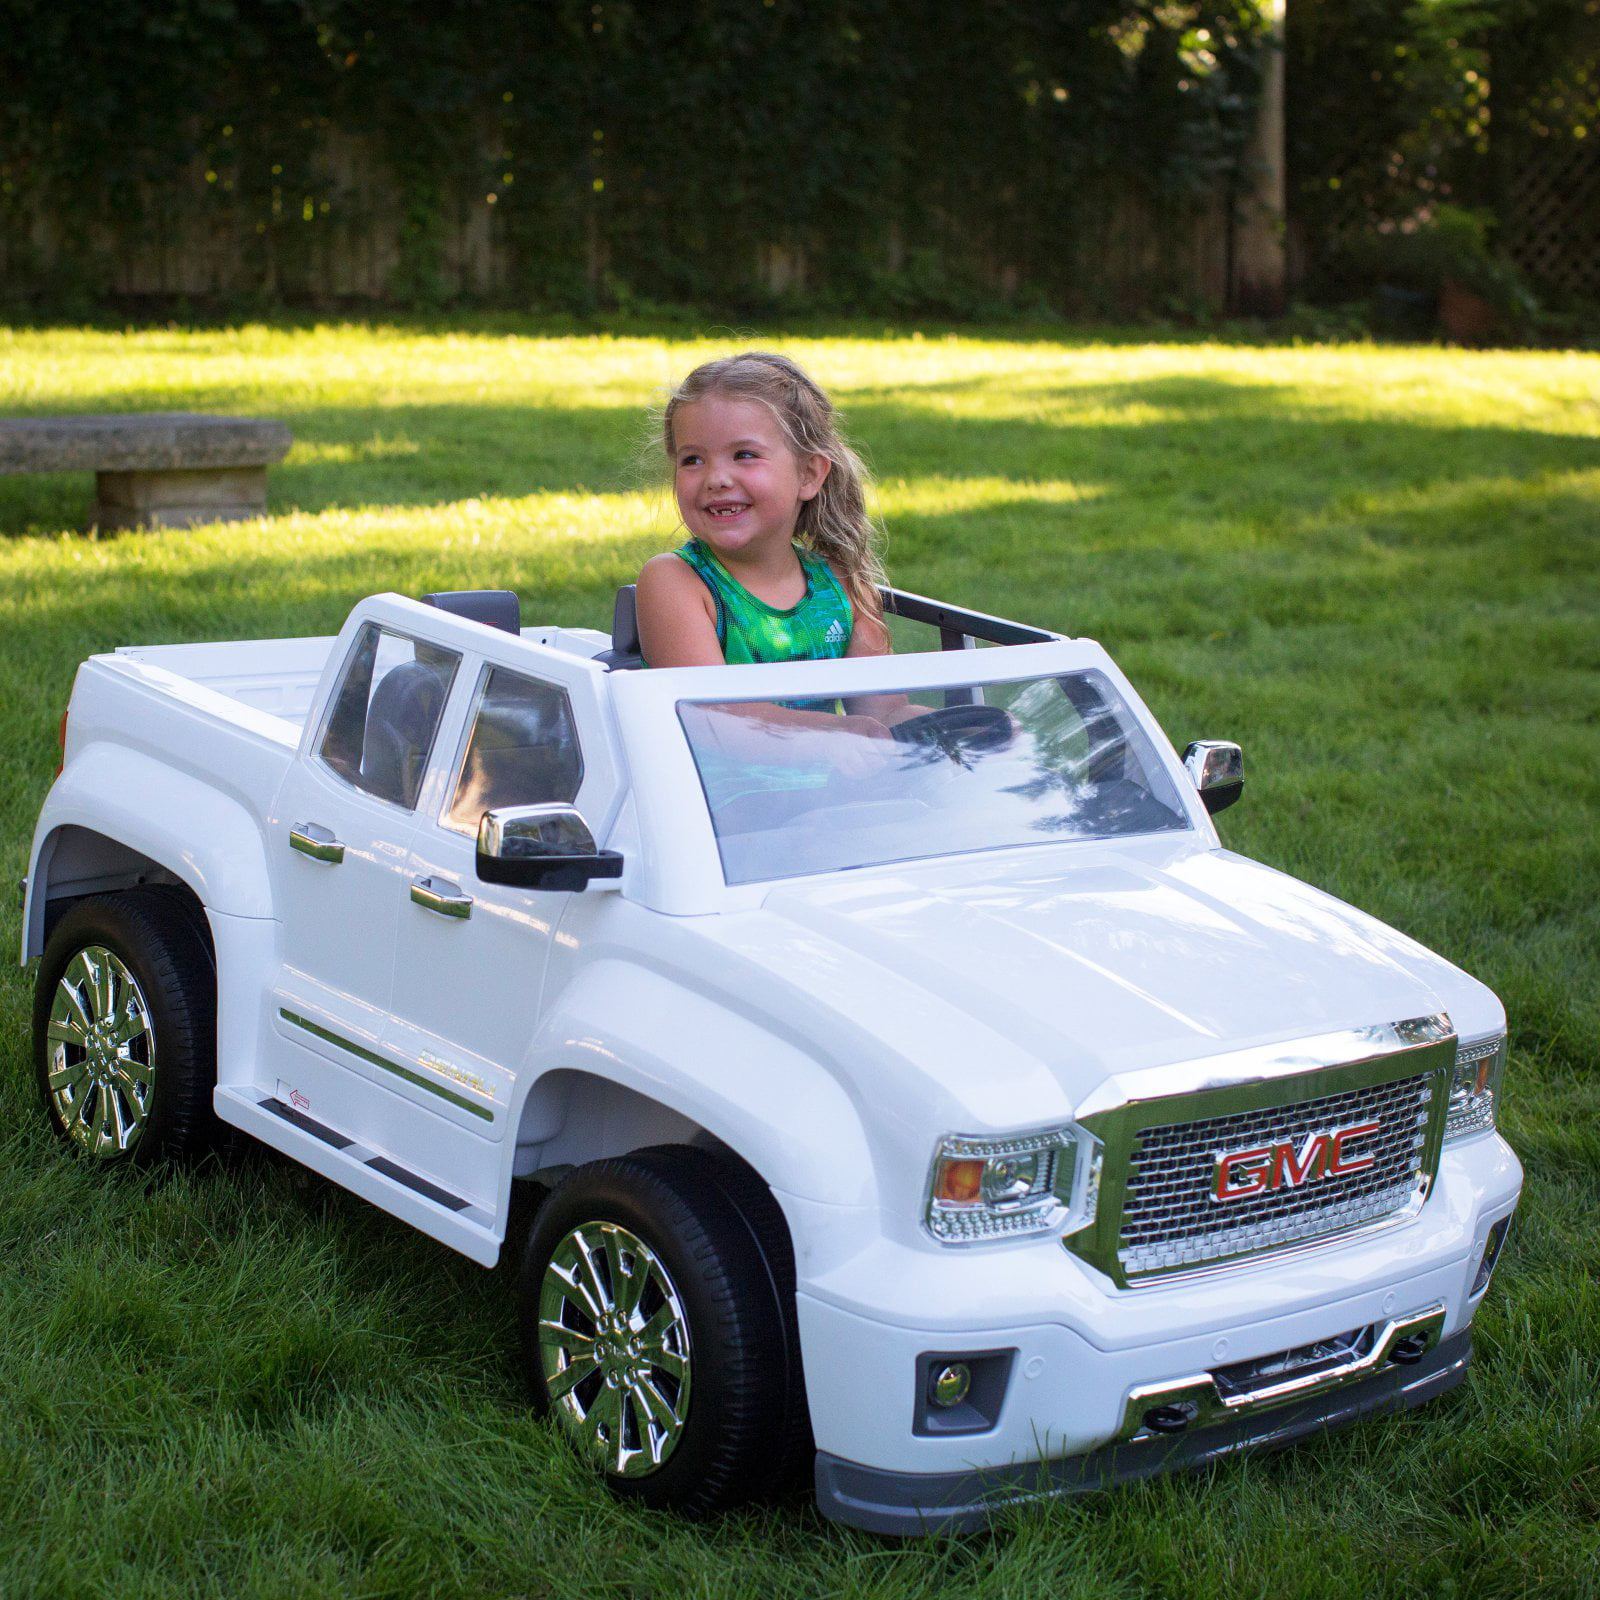 Click here to buy Rollplay 12 Volt GMC Sierra Denali Battery Powered Ride-On Vehicle White.